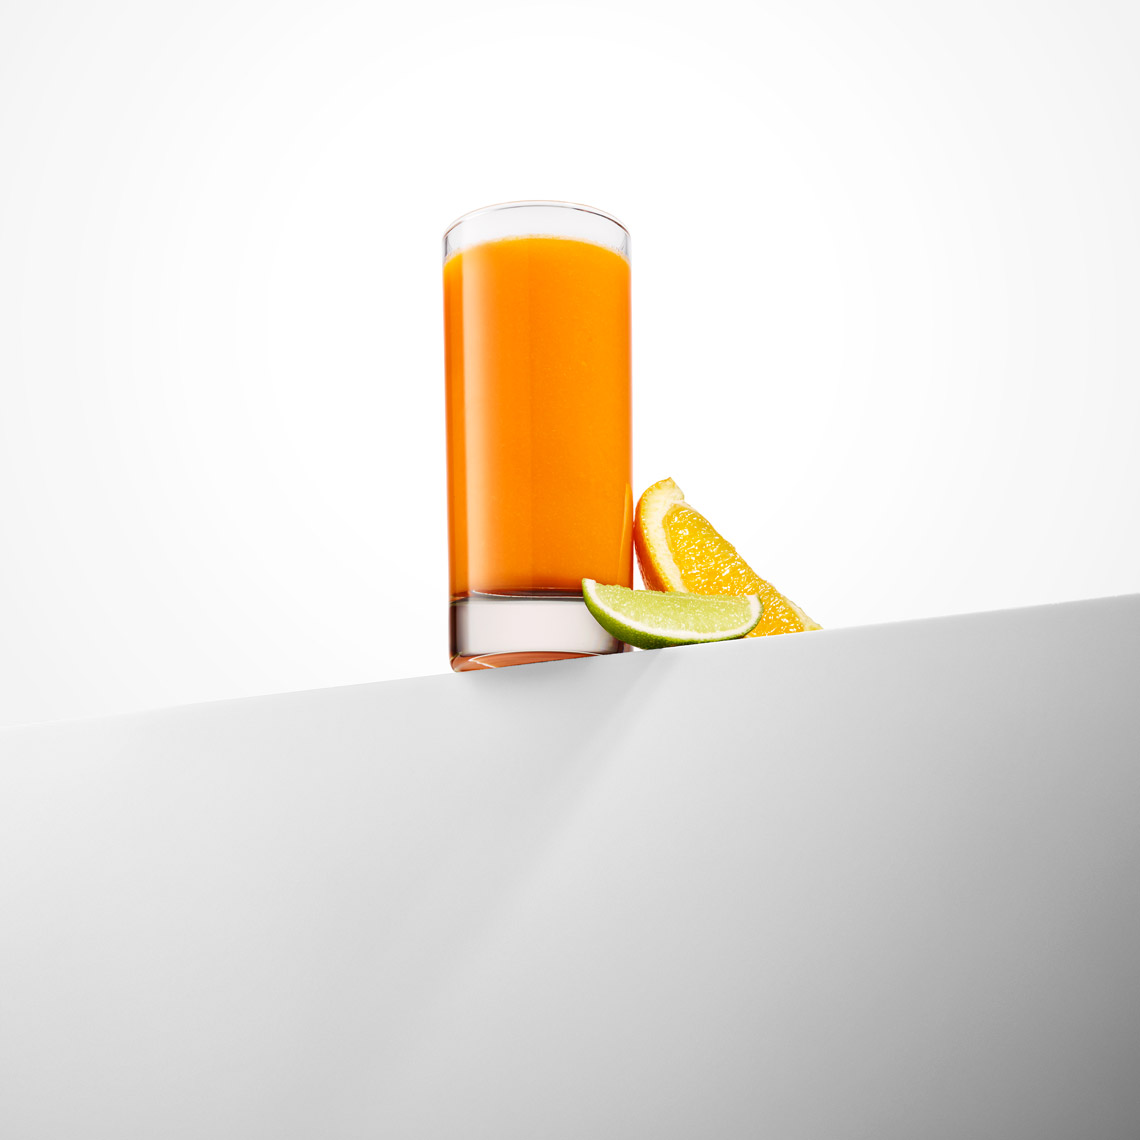 juice_squash_orange_web